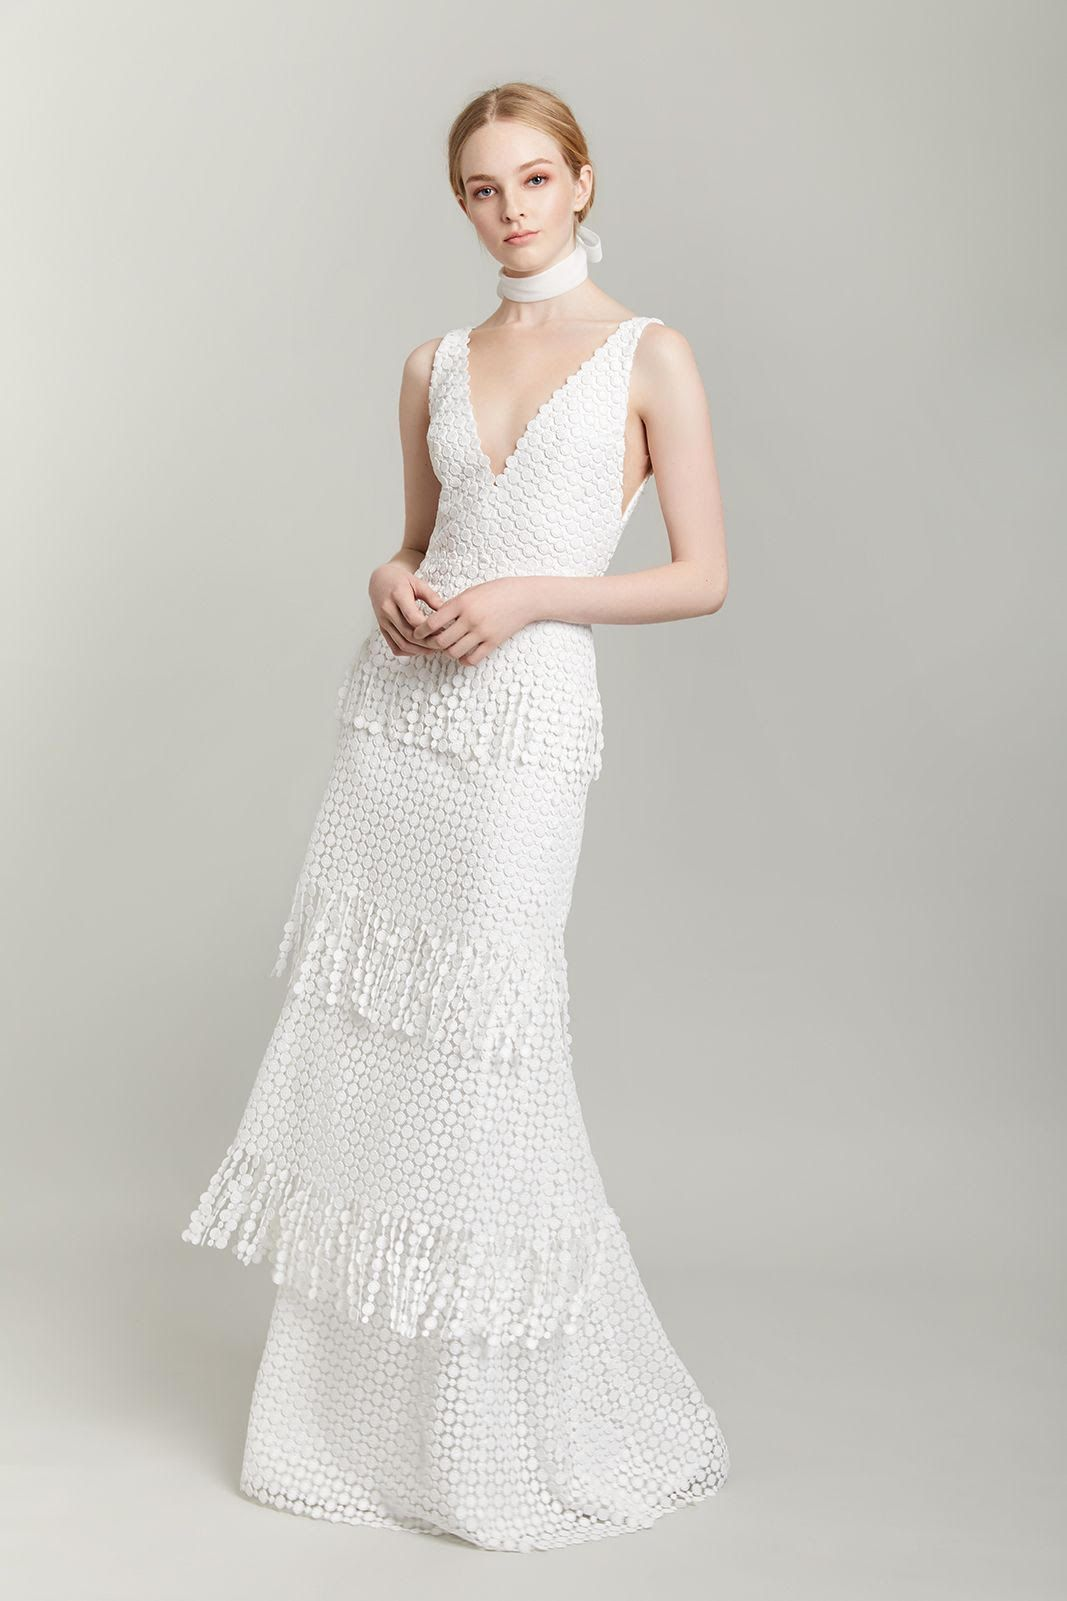 Classic With A Twist Wedding Dress Wedding Gown With Fringe Embroidered Fabric V Neck Neckl Wedding Dresses Unique Minimal Wedding Dress Lovely Wedding Dress [ 1601 x 1067 Pixel ]